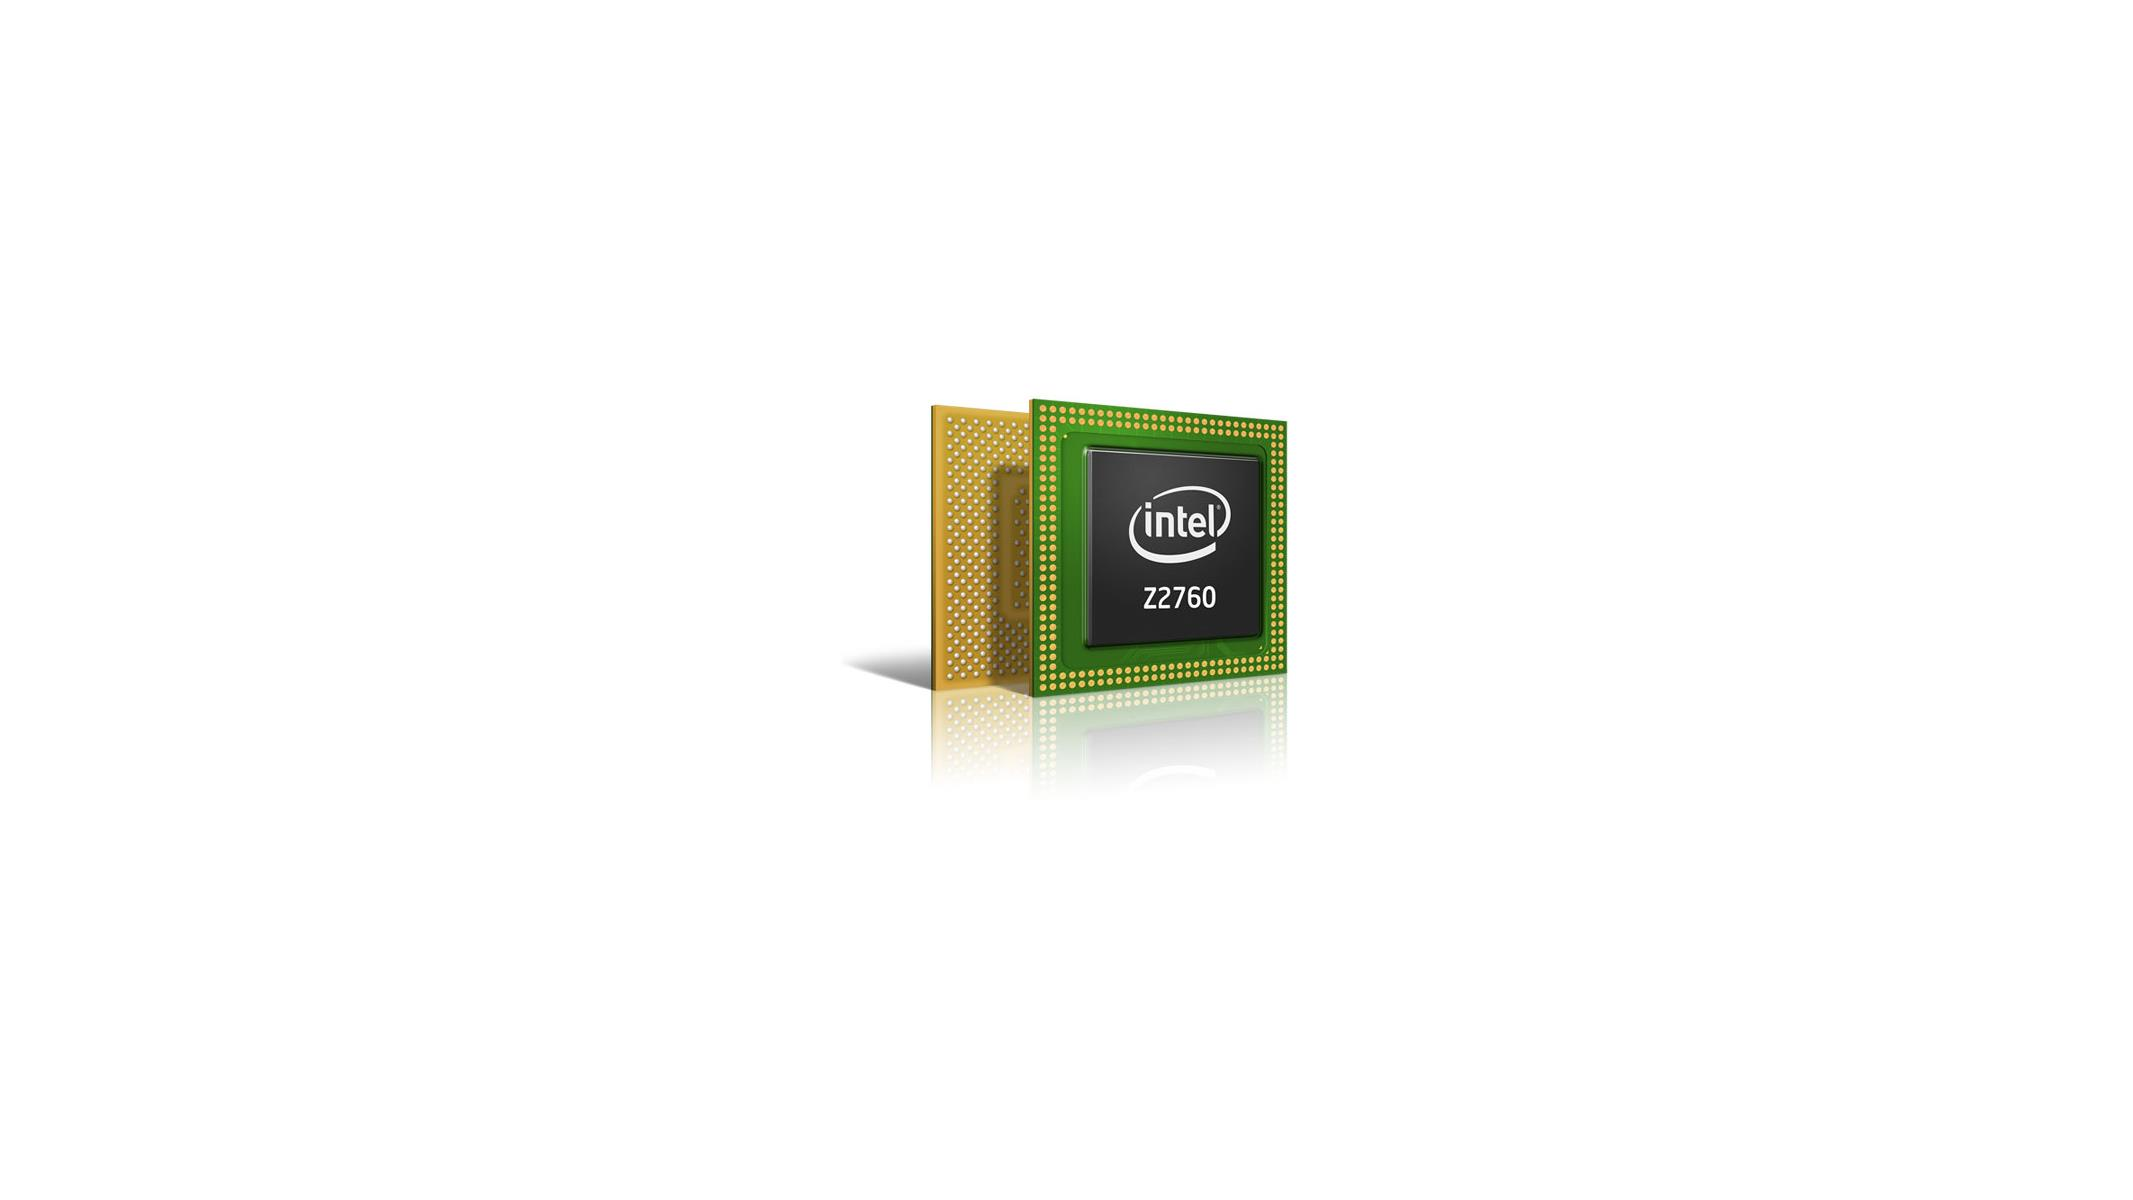 Intel Launches Clover Trail Atom Z2760 SoC and Multiple Windows 8